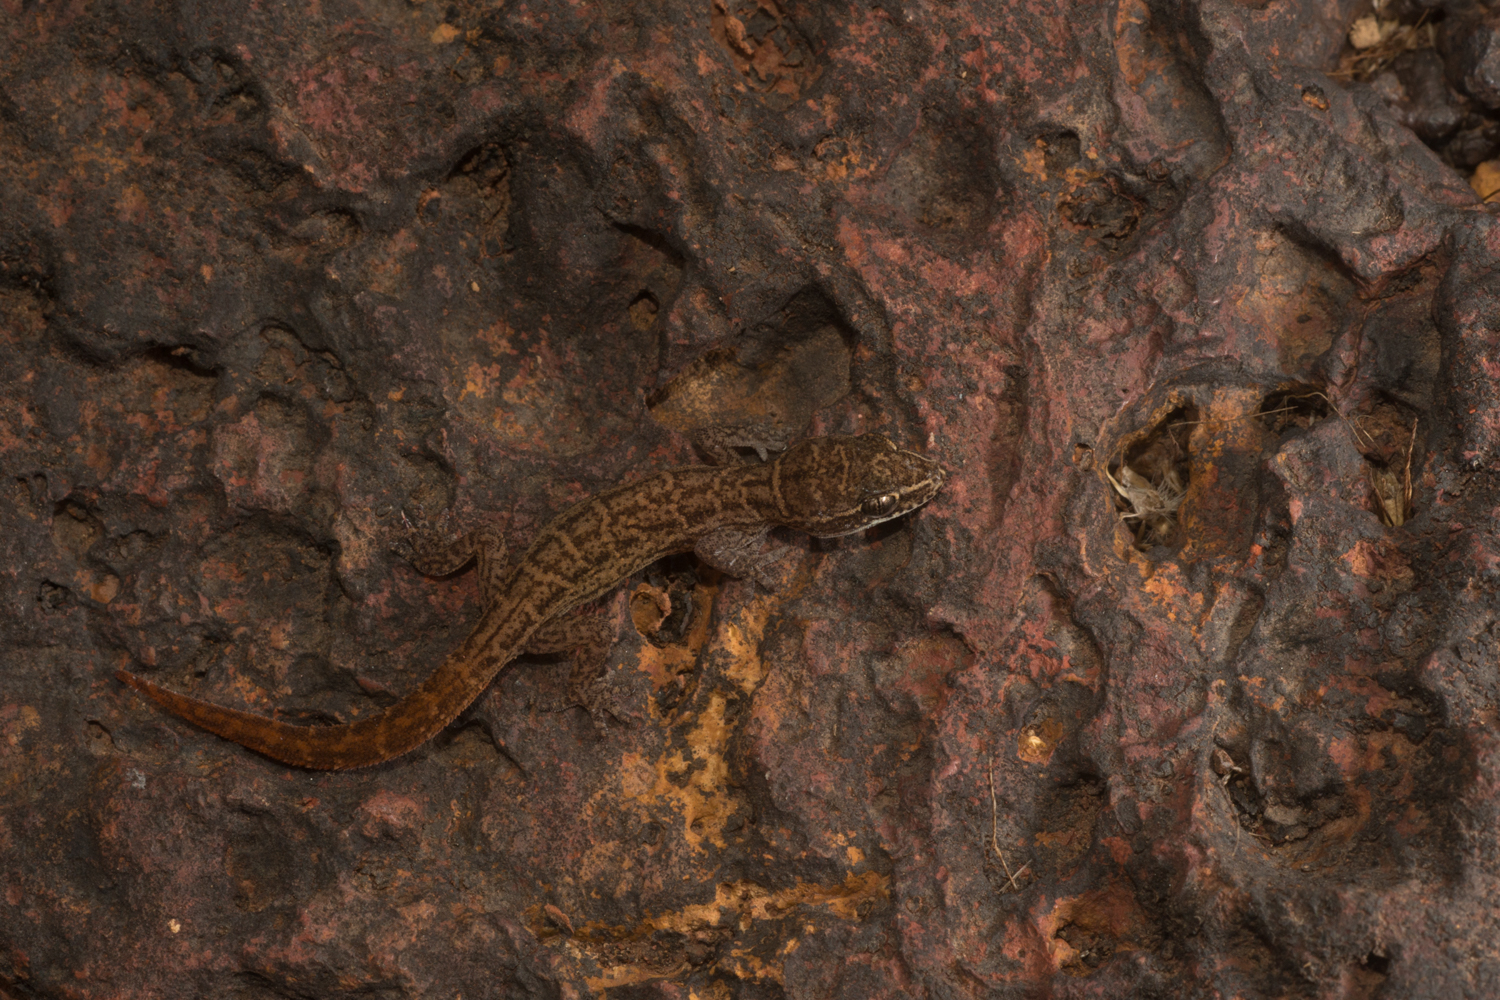 Another member of the  Hemidactylus  genus,  H. albofasciatus , perches on rust red lateritic rocks on plateaus in the coastal Ratnagiri district.